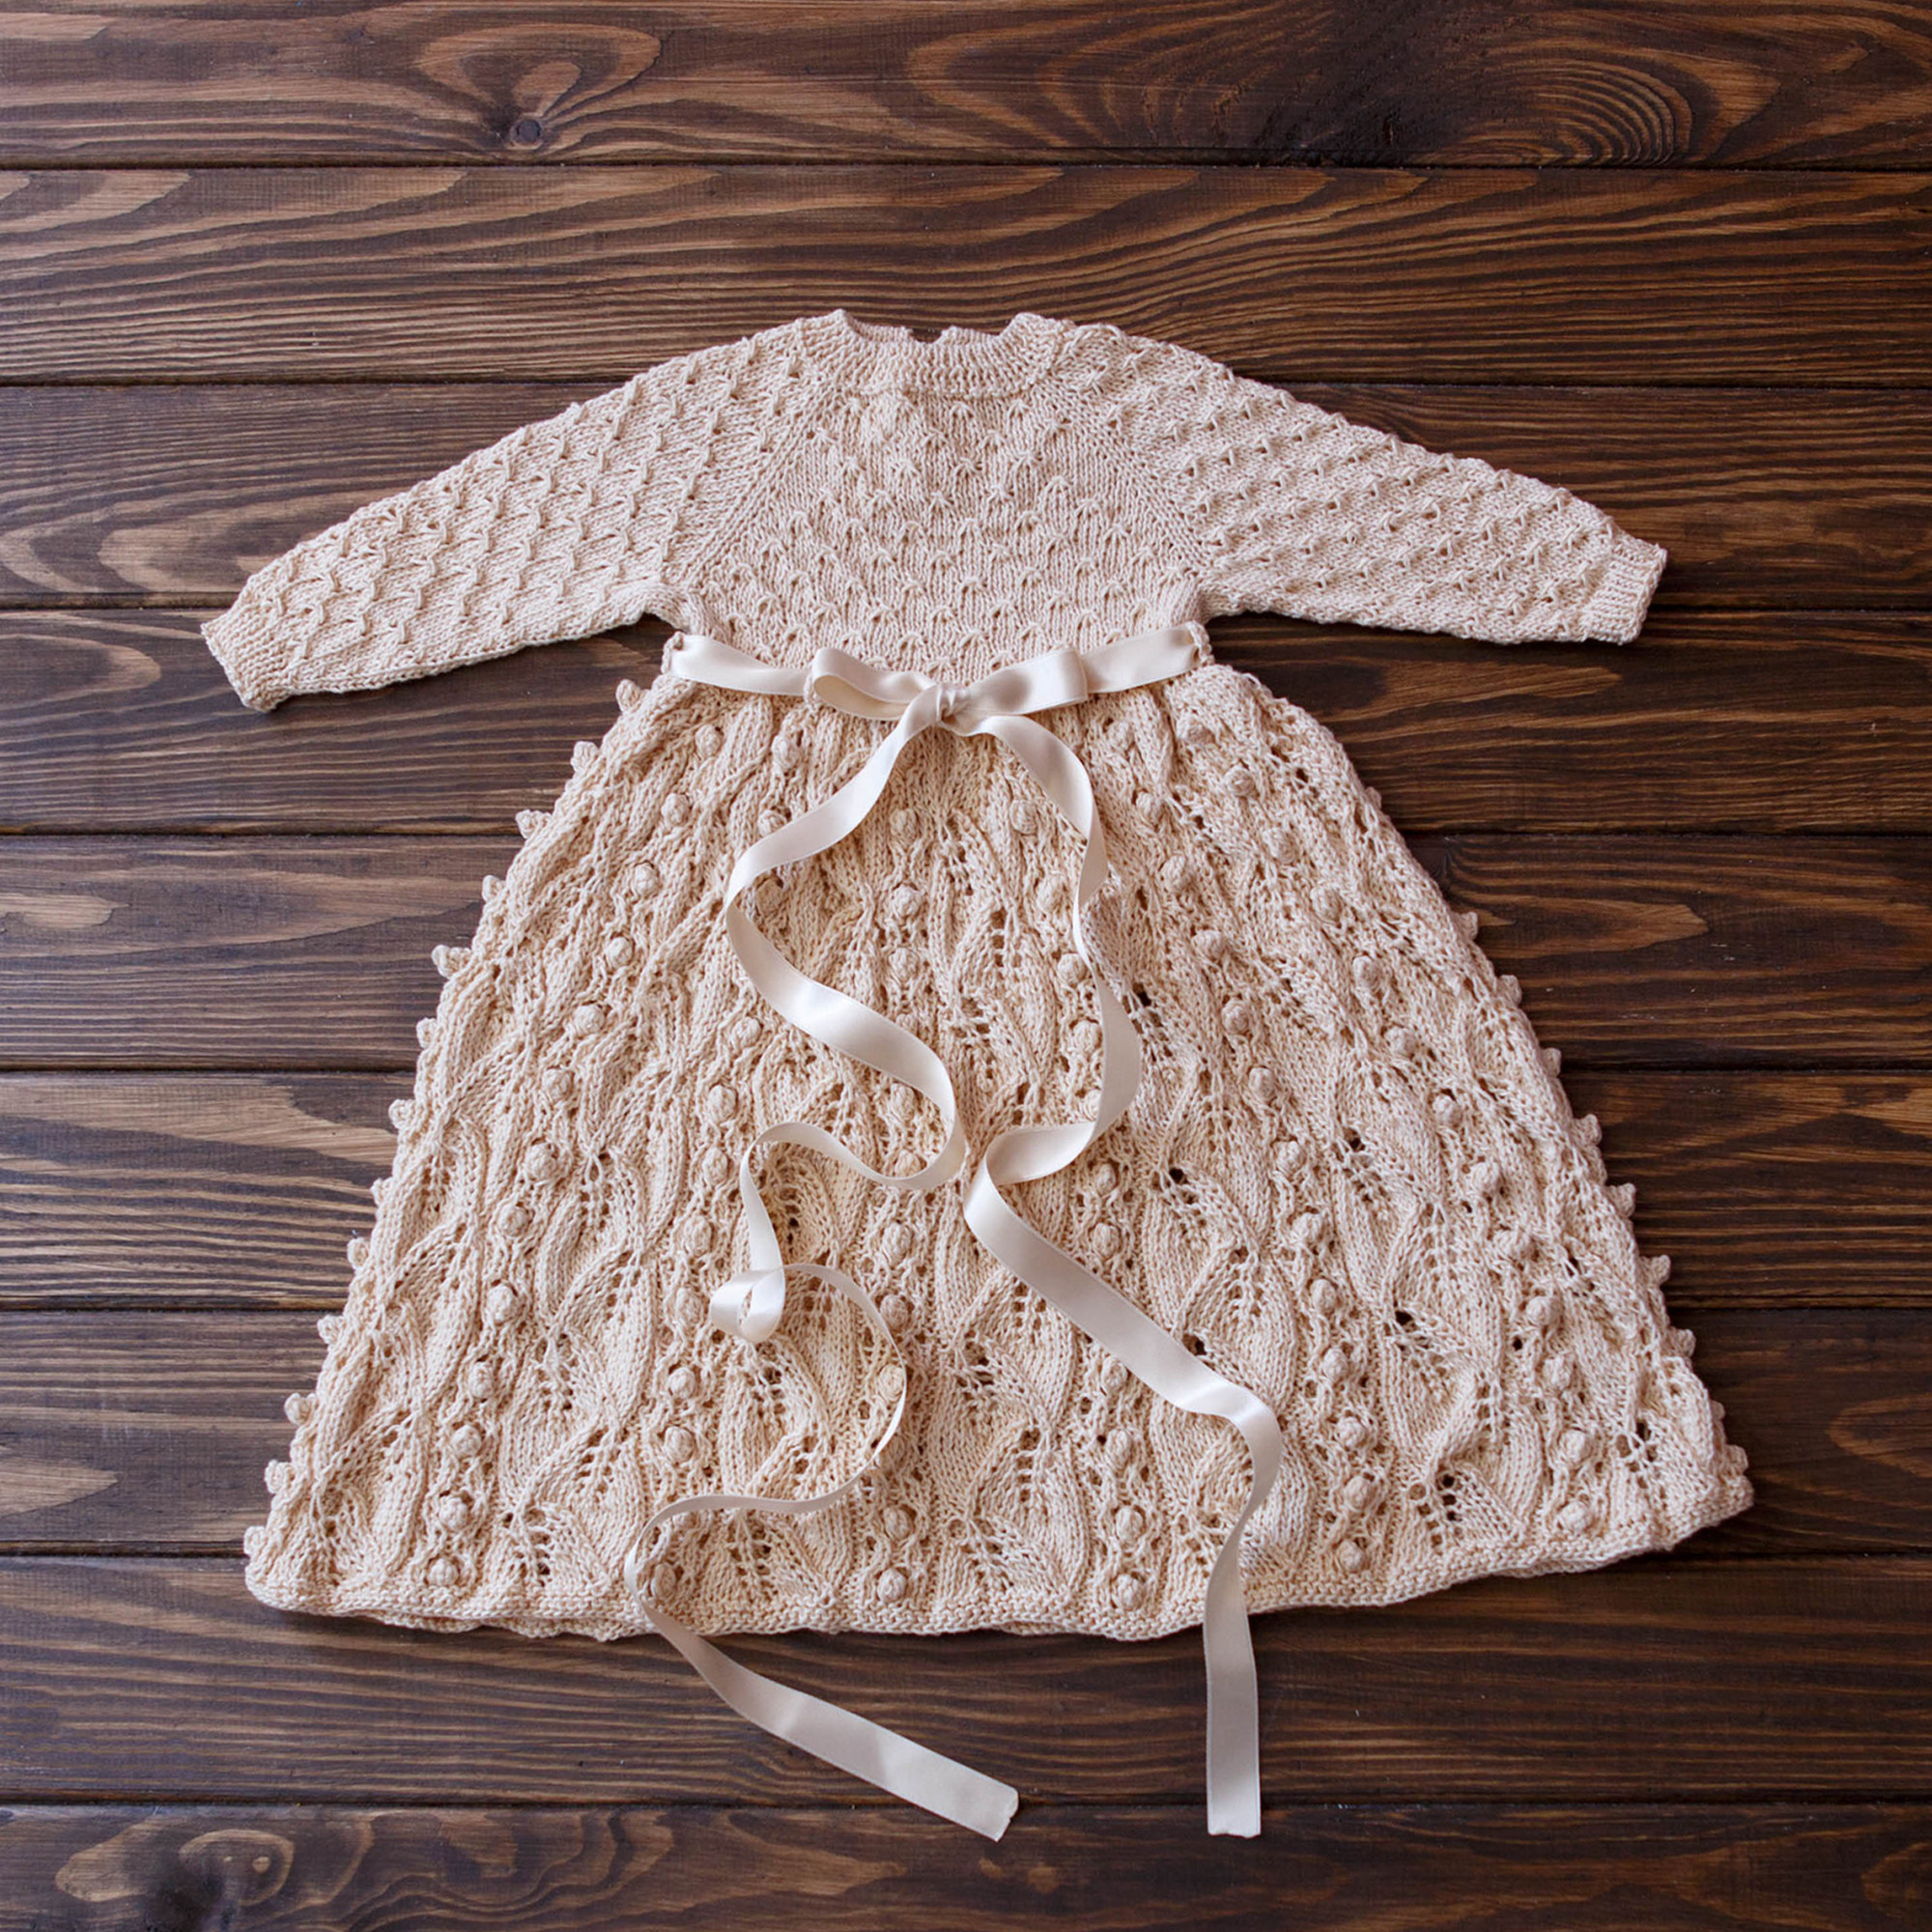 Vintage Knit Baby Girl Dress Size 3-6 Months 57-67 cm